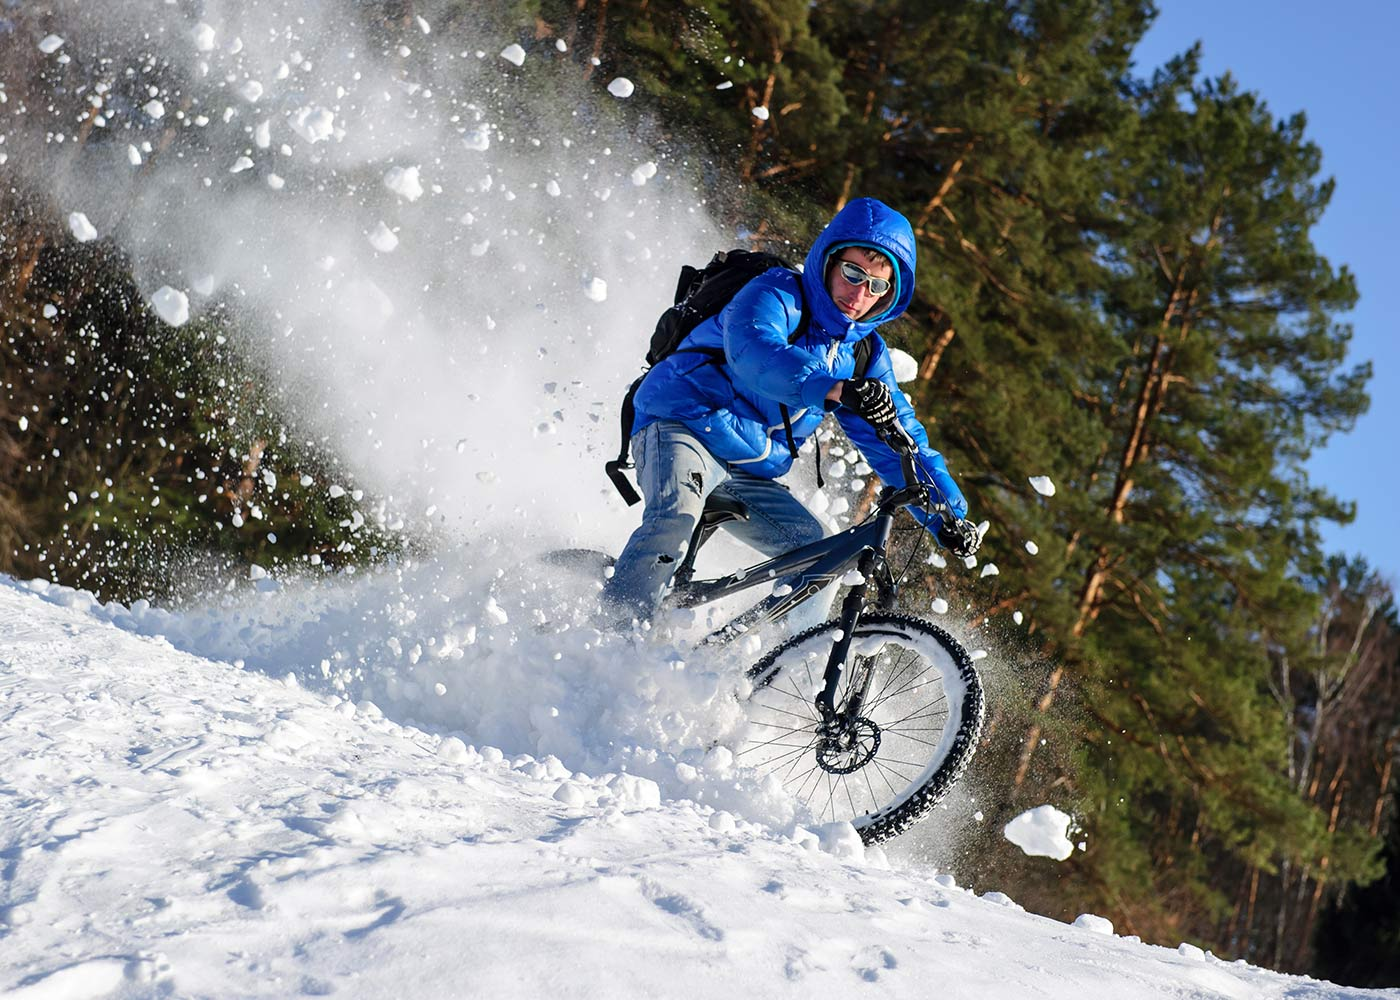 Mountain Bike riding in snow